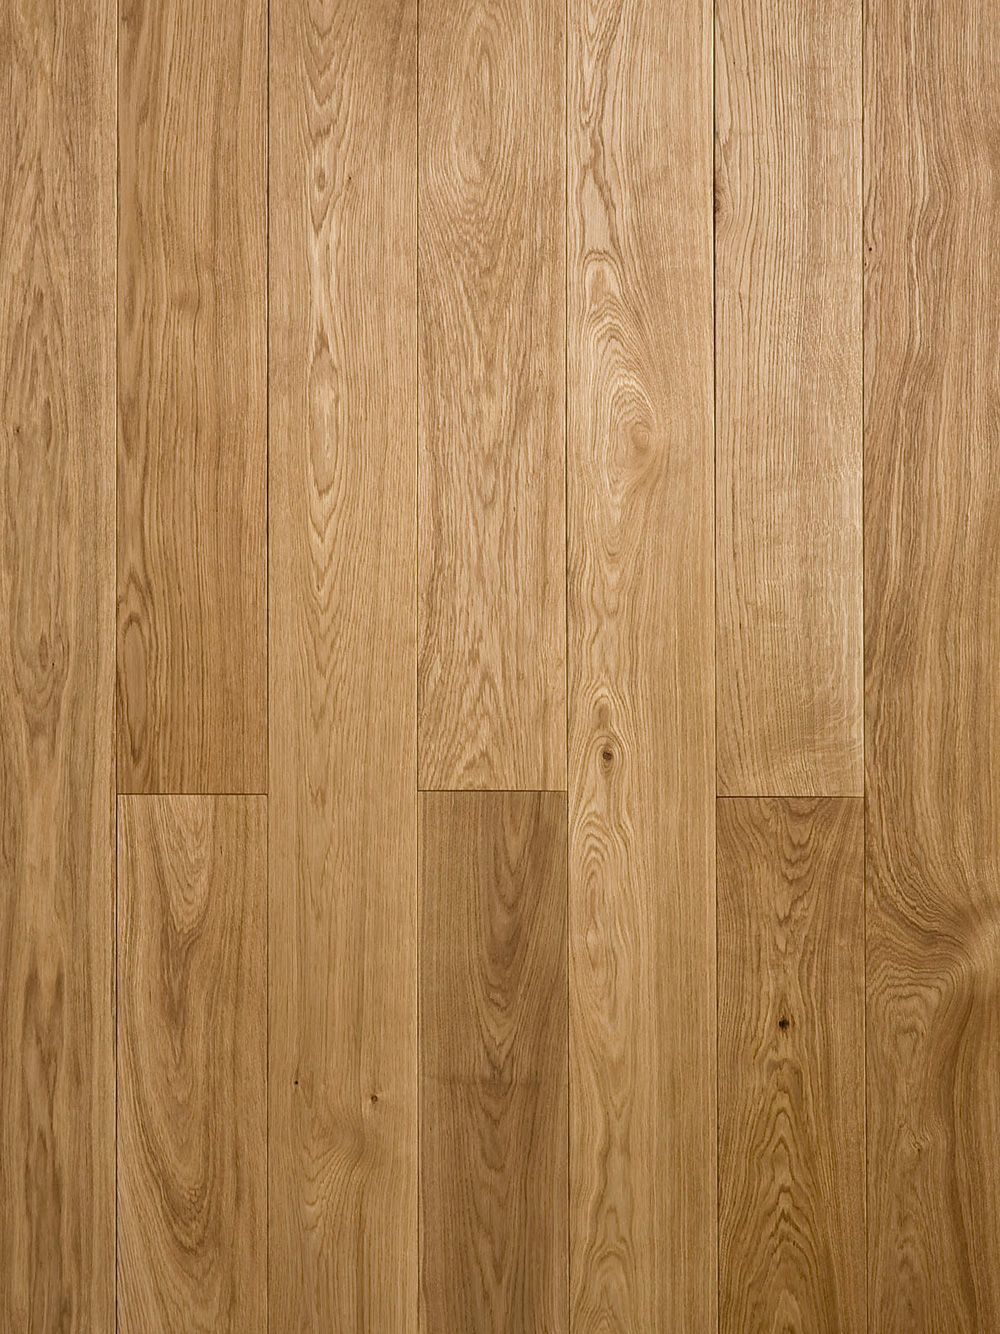 Oak wood floor texture design inspiration 1216075 floors for Floor wood texture